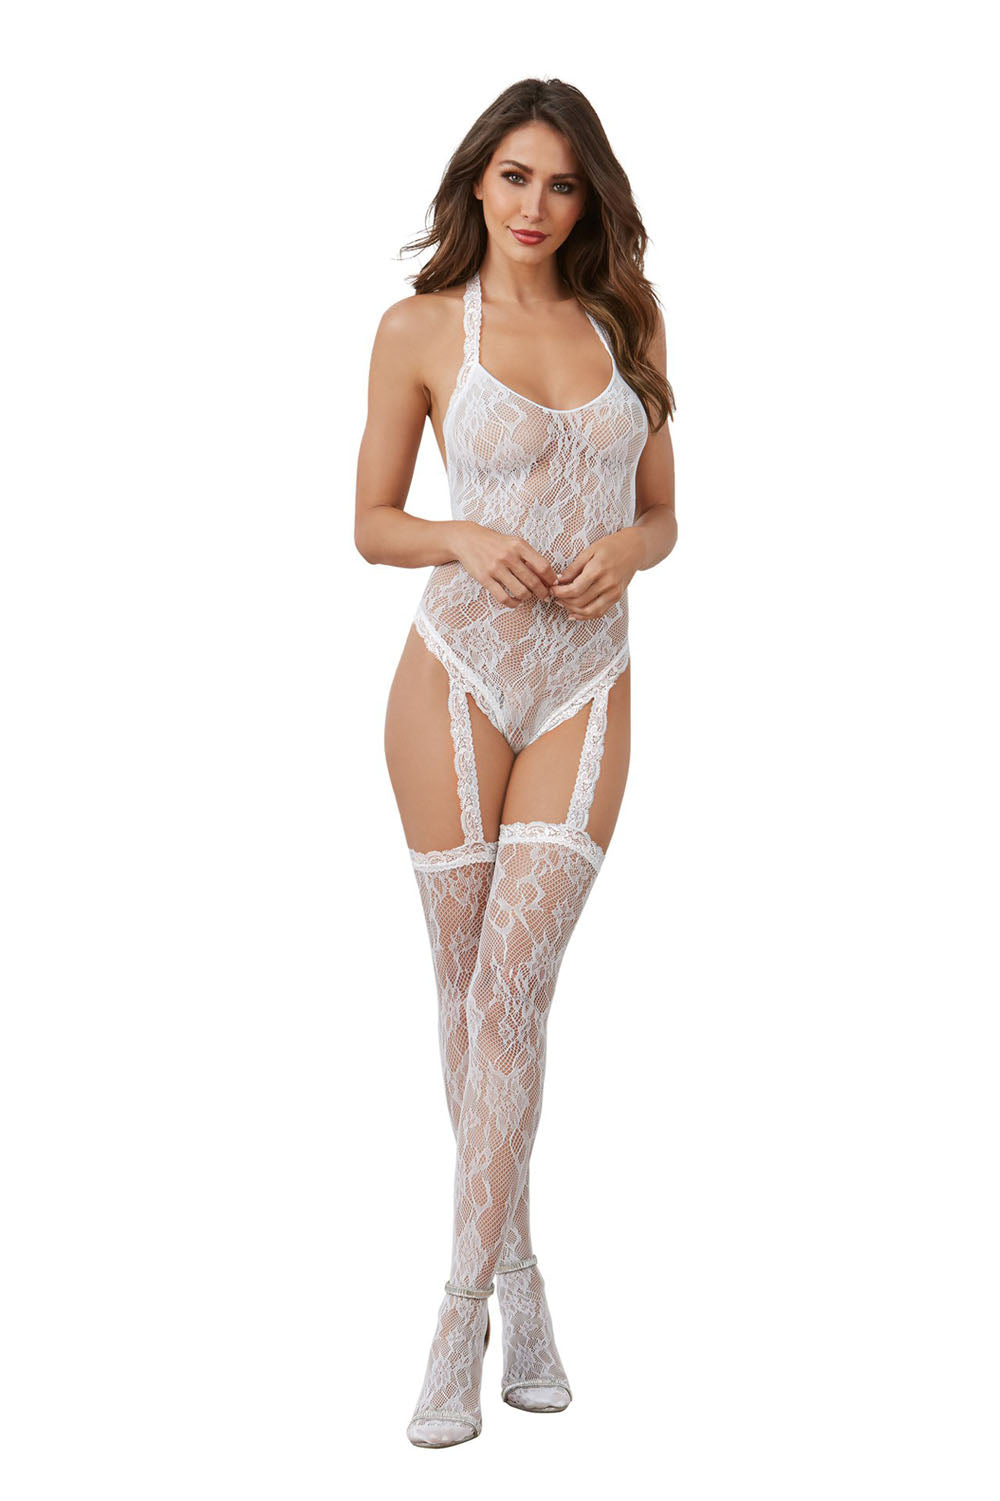 Teddy Bodystocking - White - One Size - Dreamgirl -  Los Angeles Lingerie